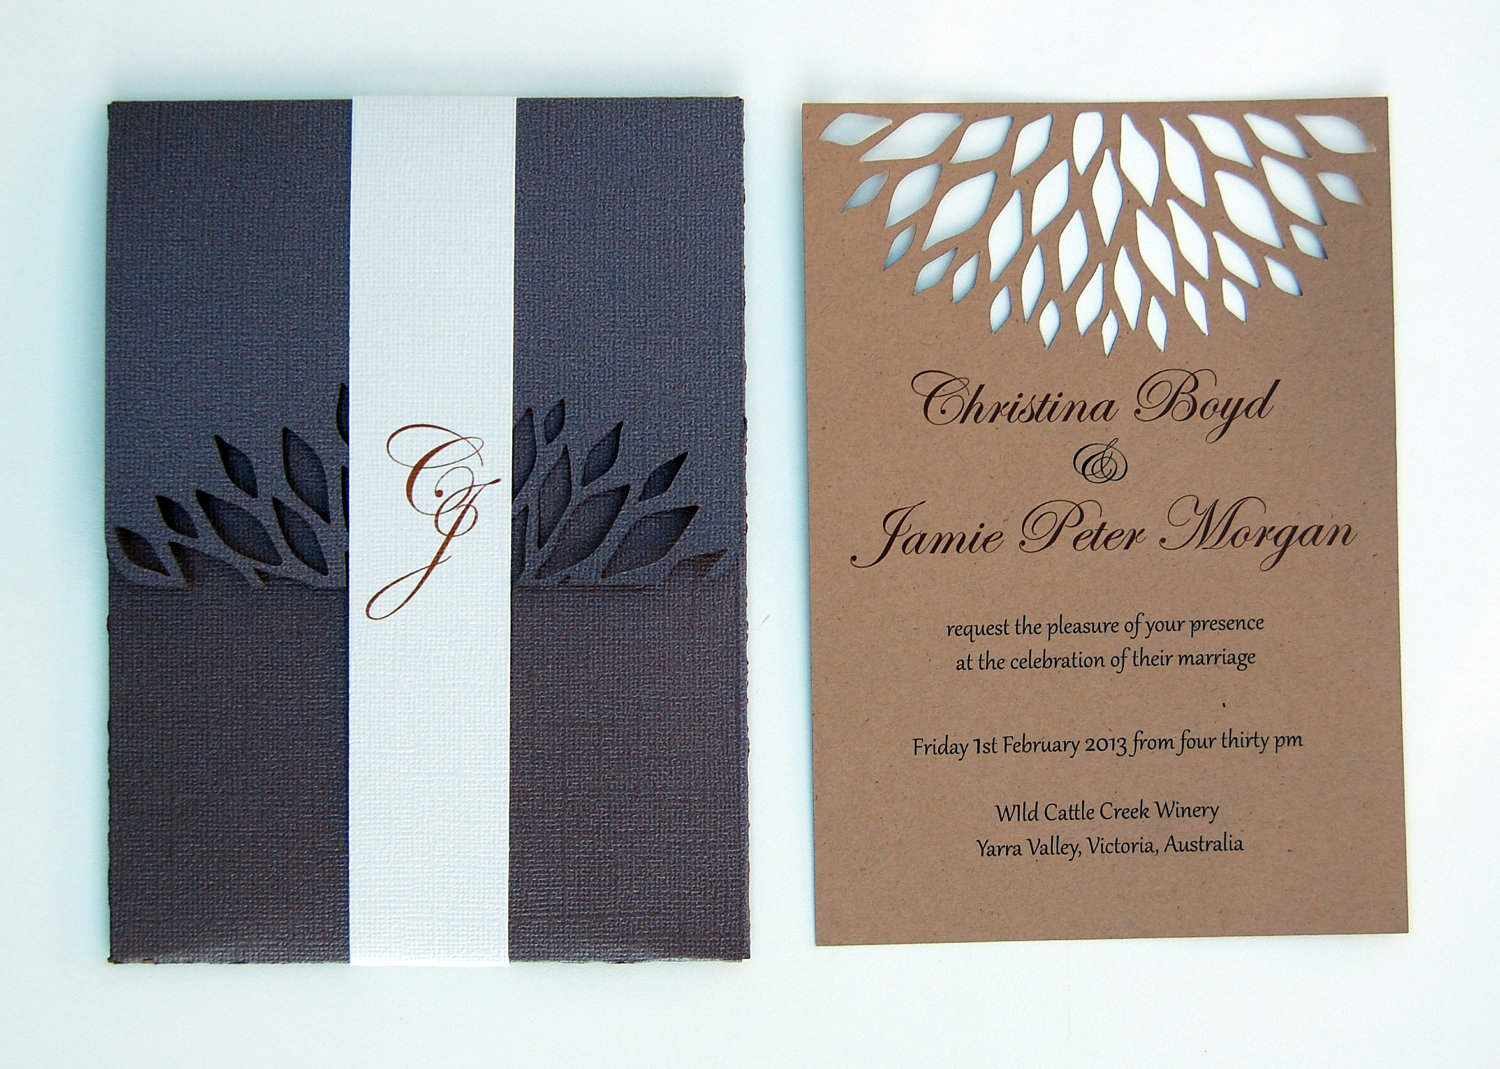 Handmade-wedding-stationery-decor-using-kraft-paper-etsy-weddings-laser-cut-invites.original